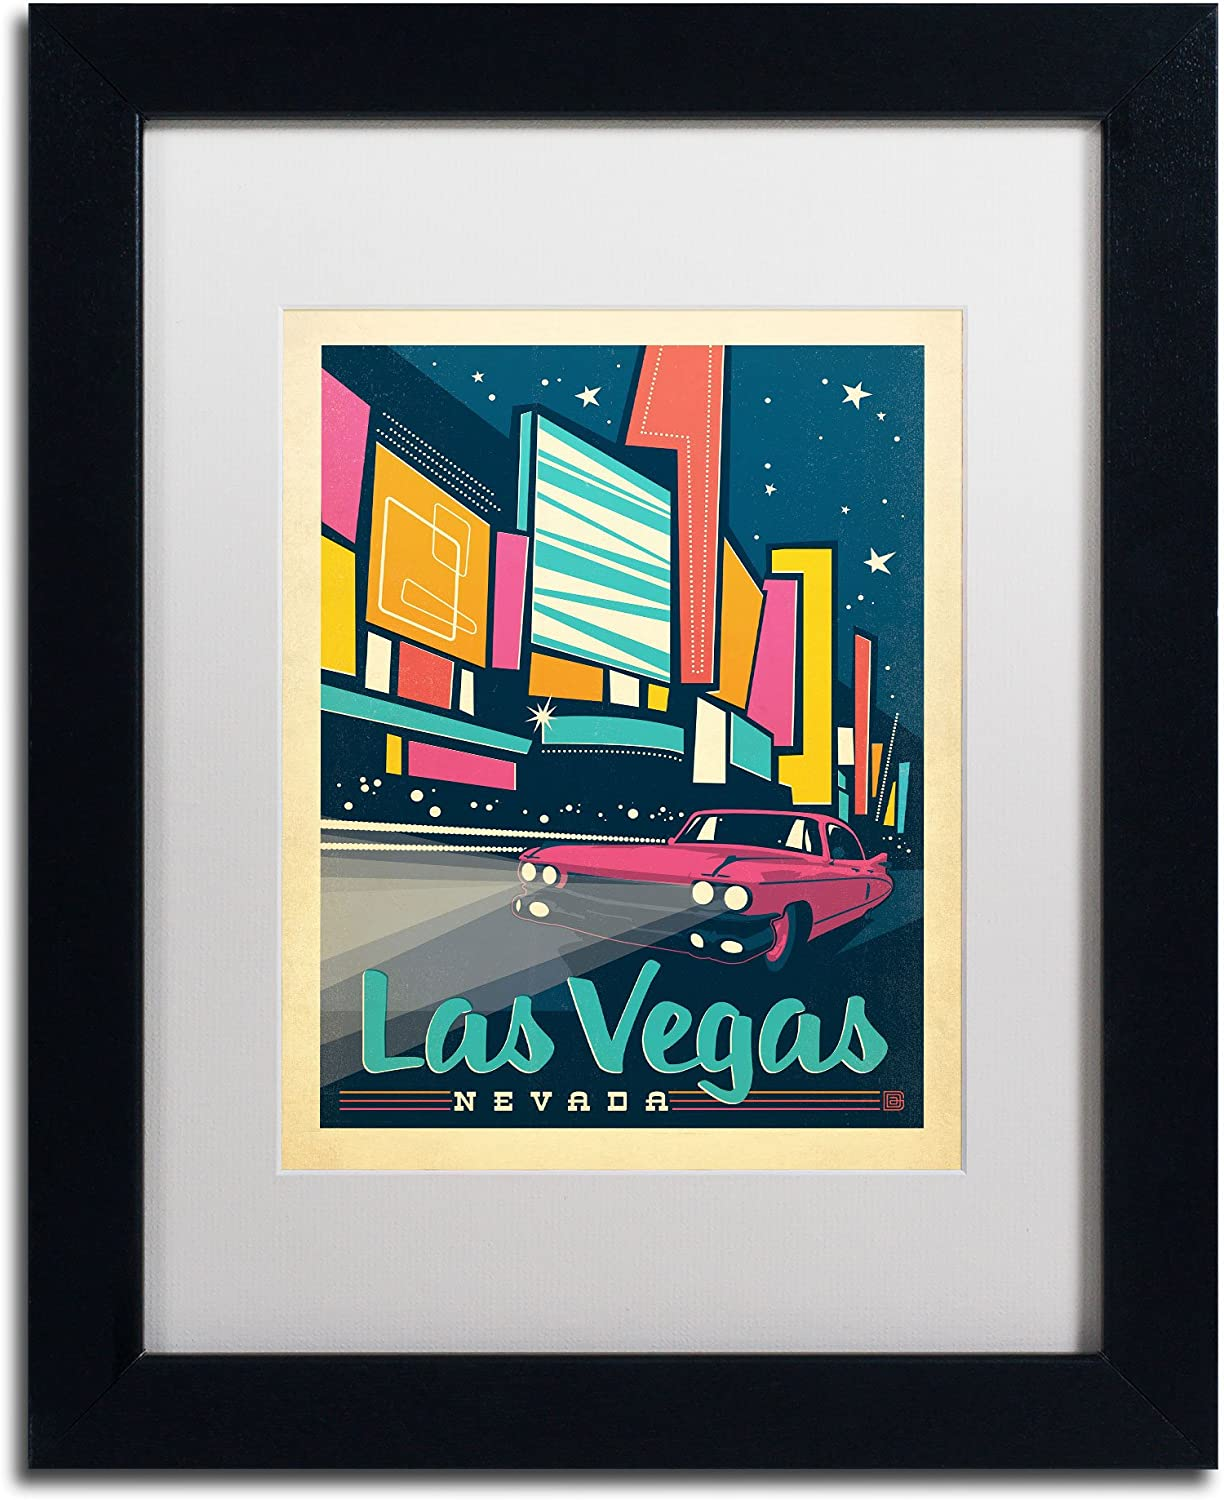 Trademark Fine Art Las Vegas Nevada Canvas Artwork by Anderson Design Group, 11 by 14Inch, White Matte with Black Frame